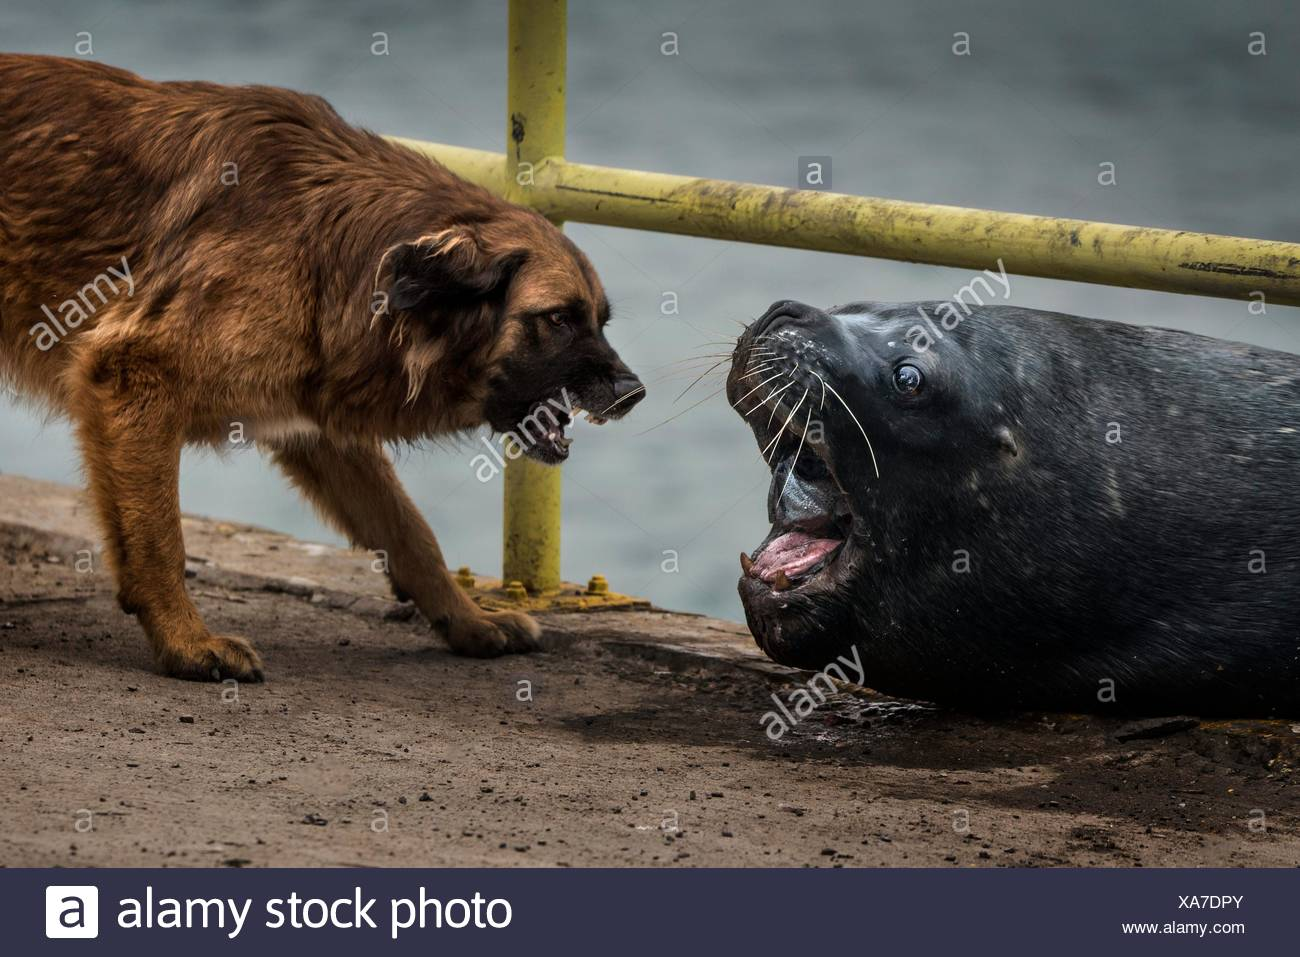 Sea lion VS Dog - dog and sea lion fighting for a piece of fish - Stock Image